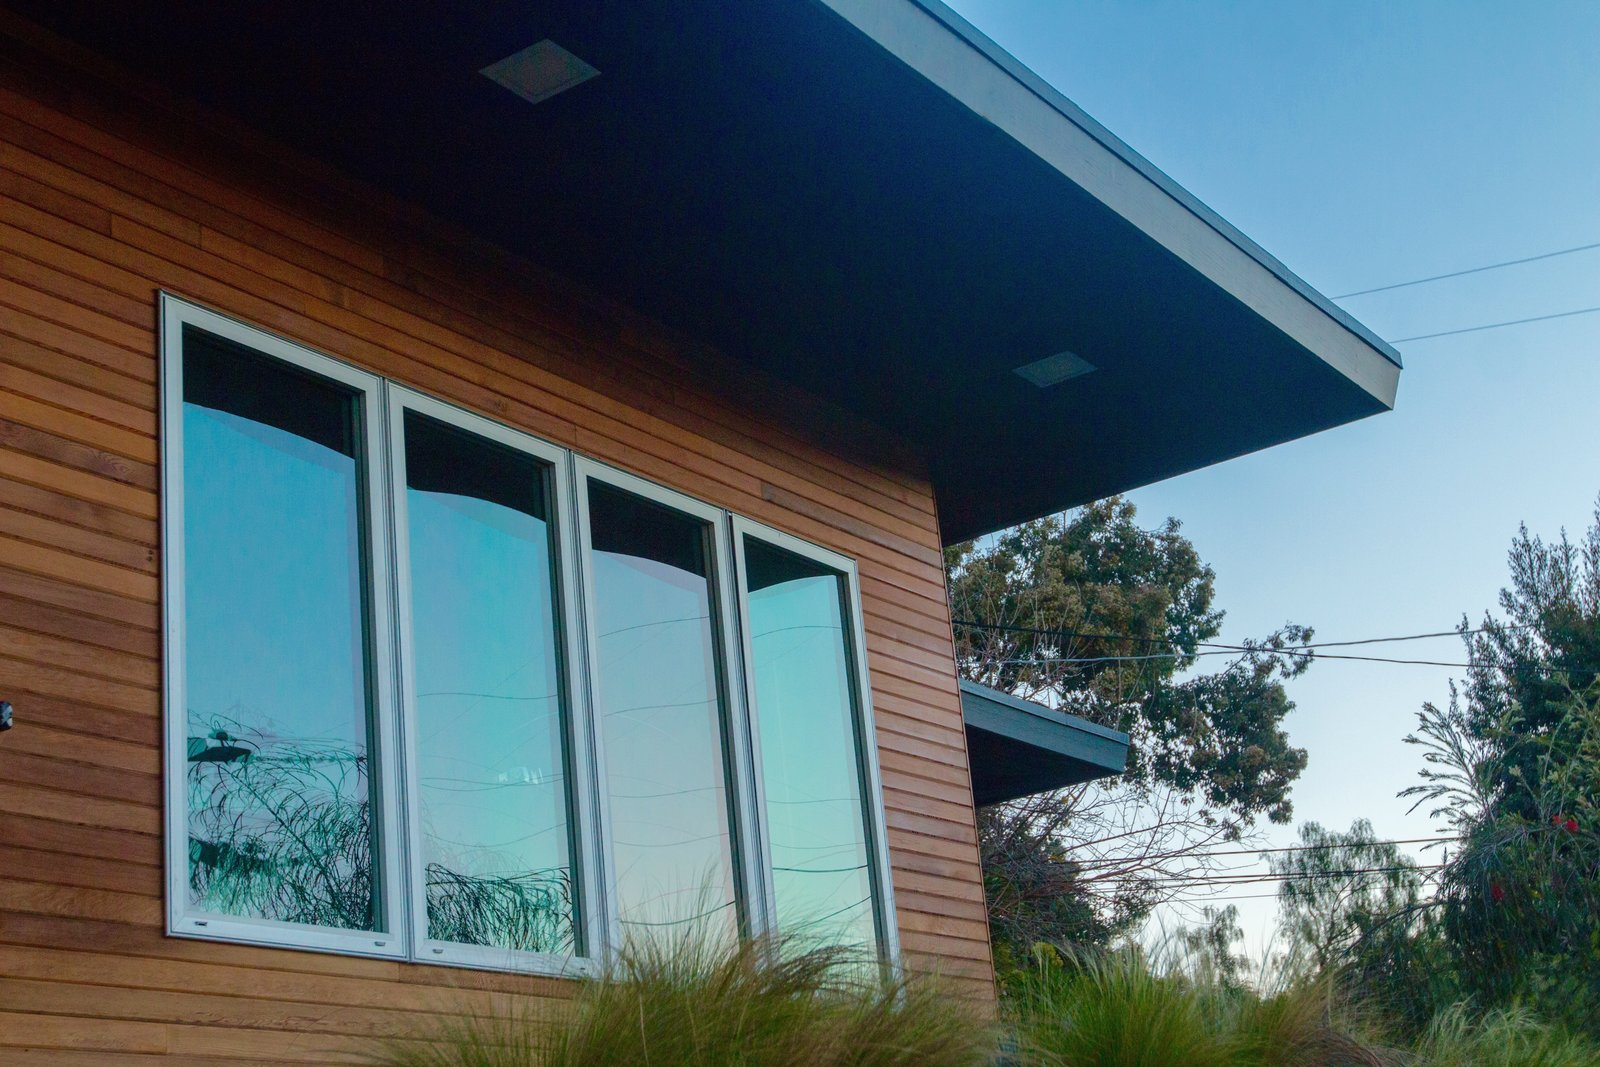 Exterior: Dual Glazed Aluminum Windows  Edgewood